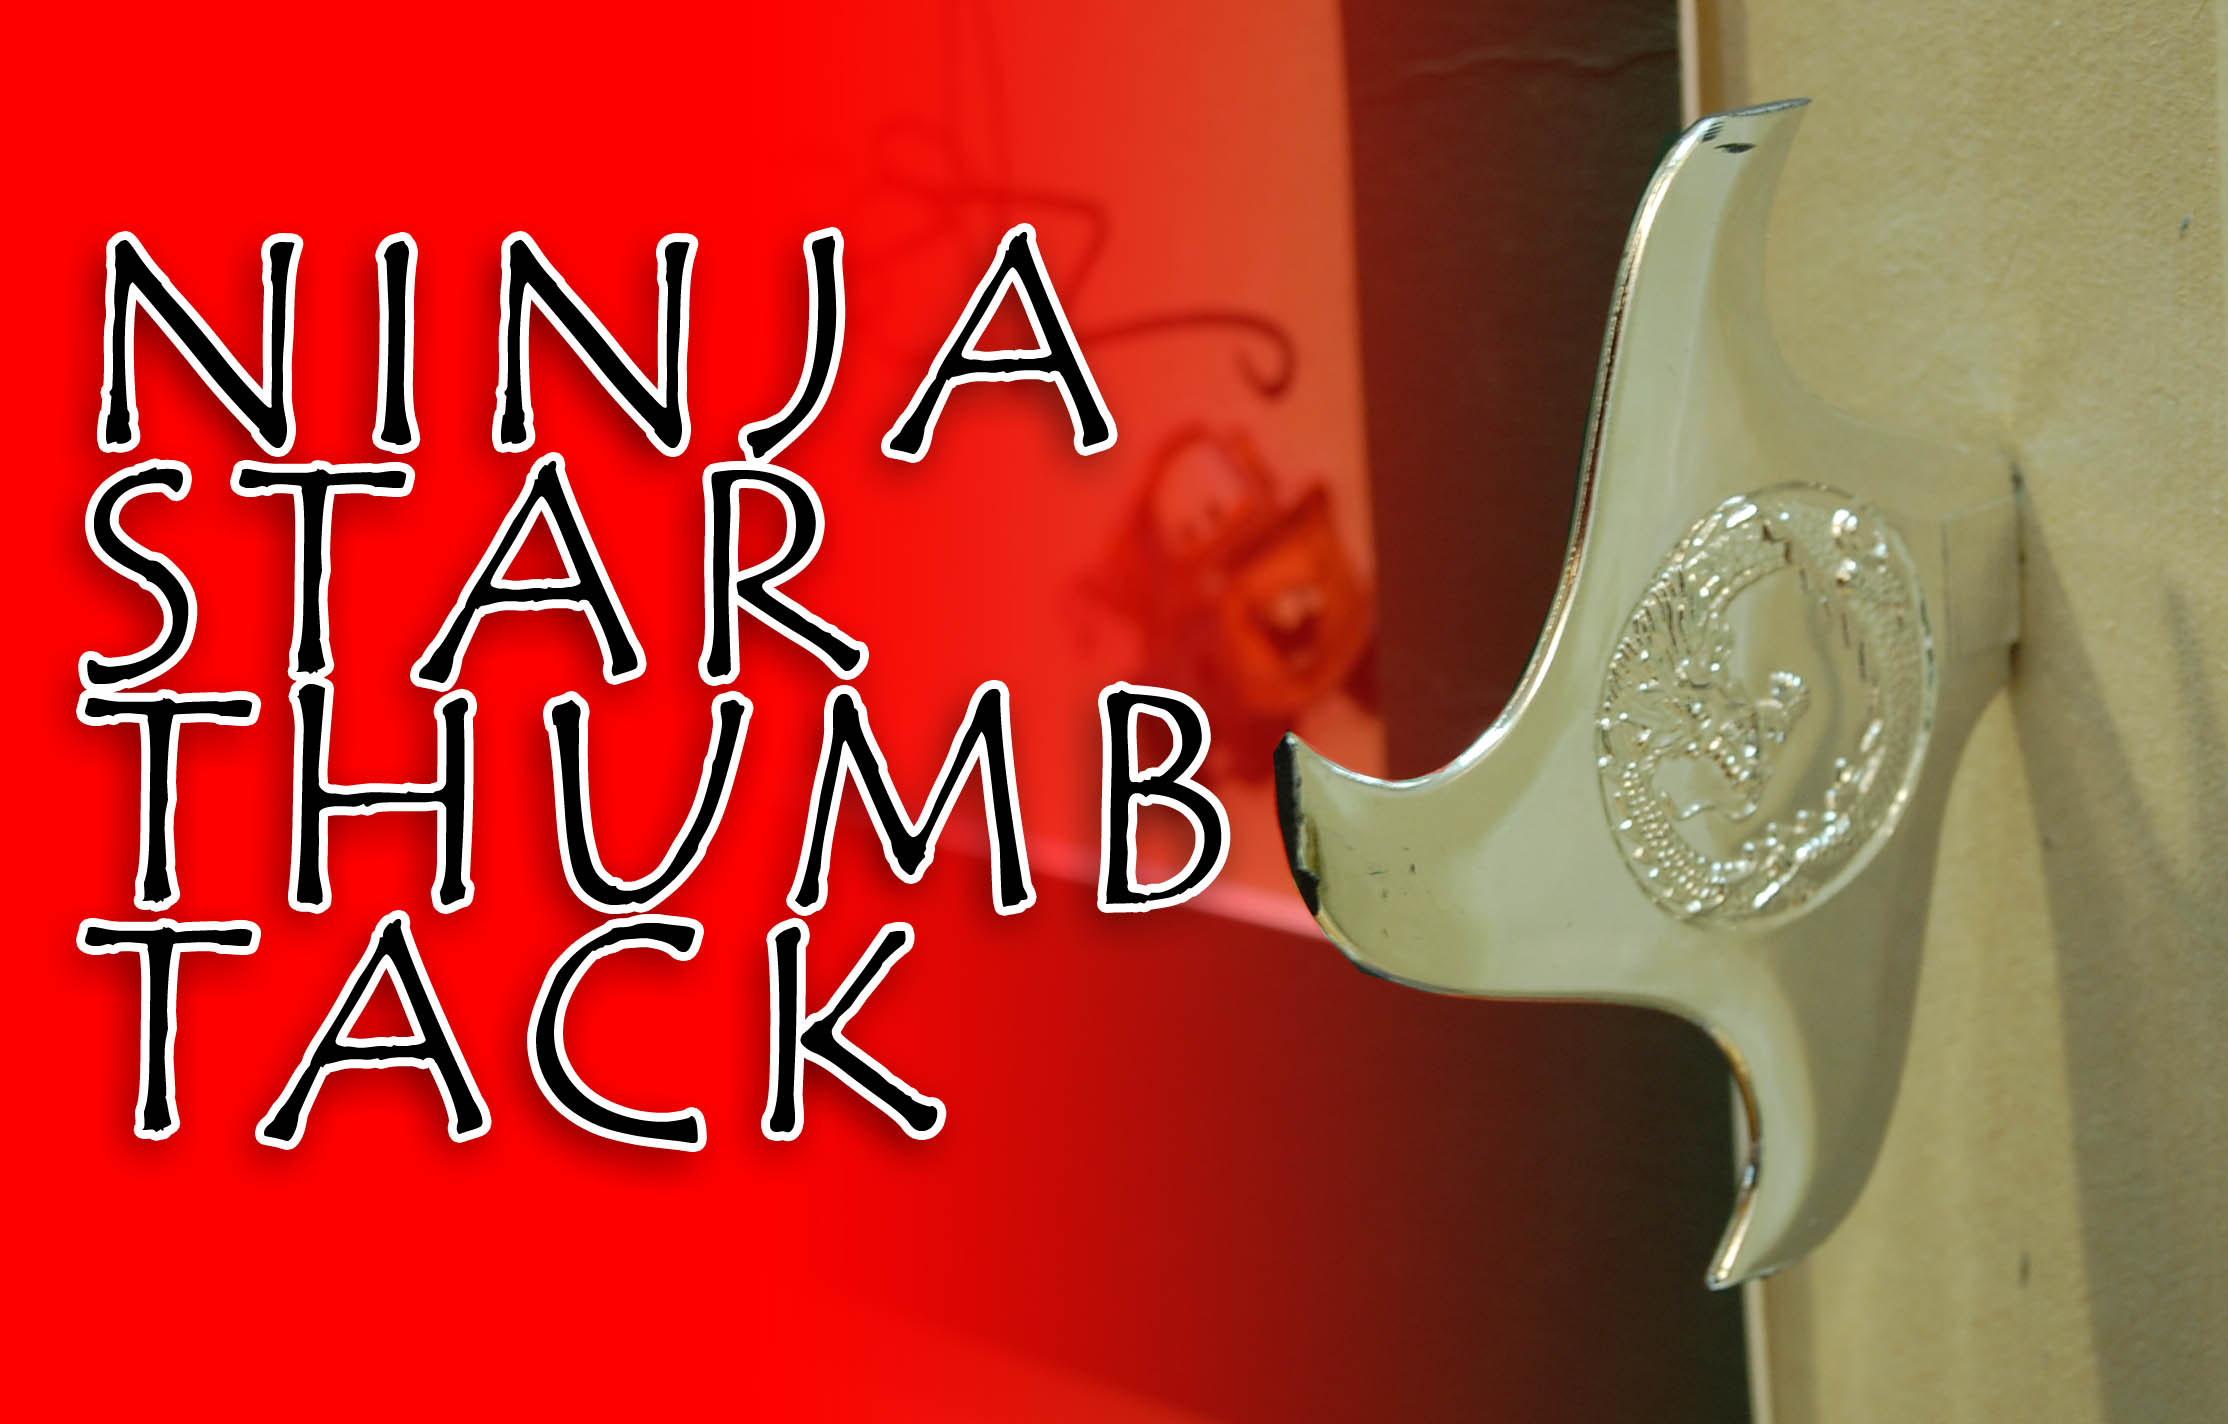 Ninja Star Thumb Tacks